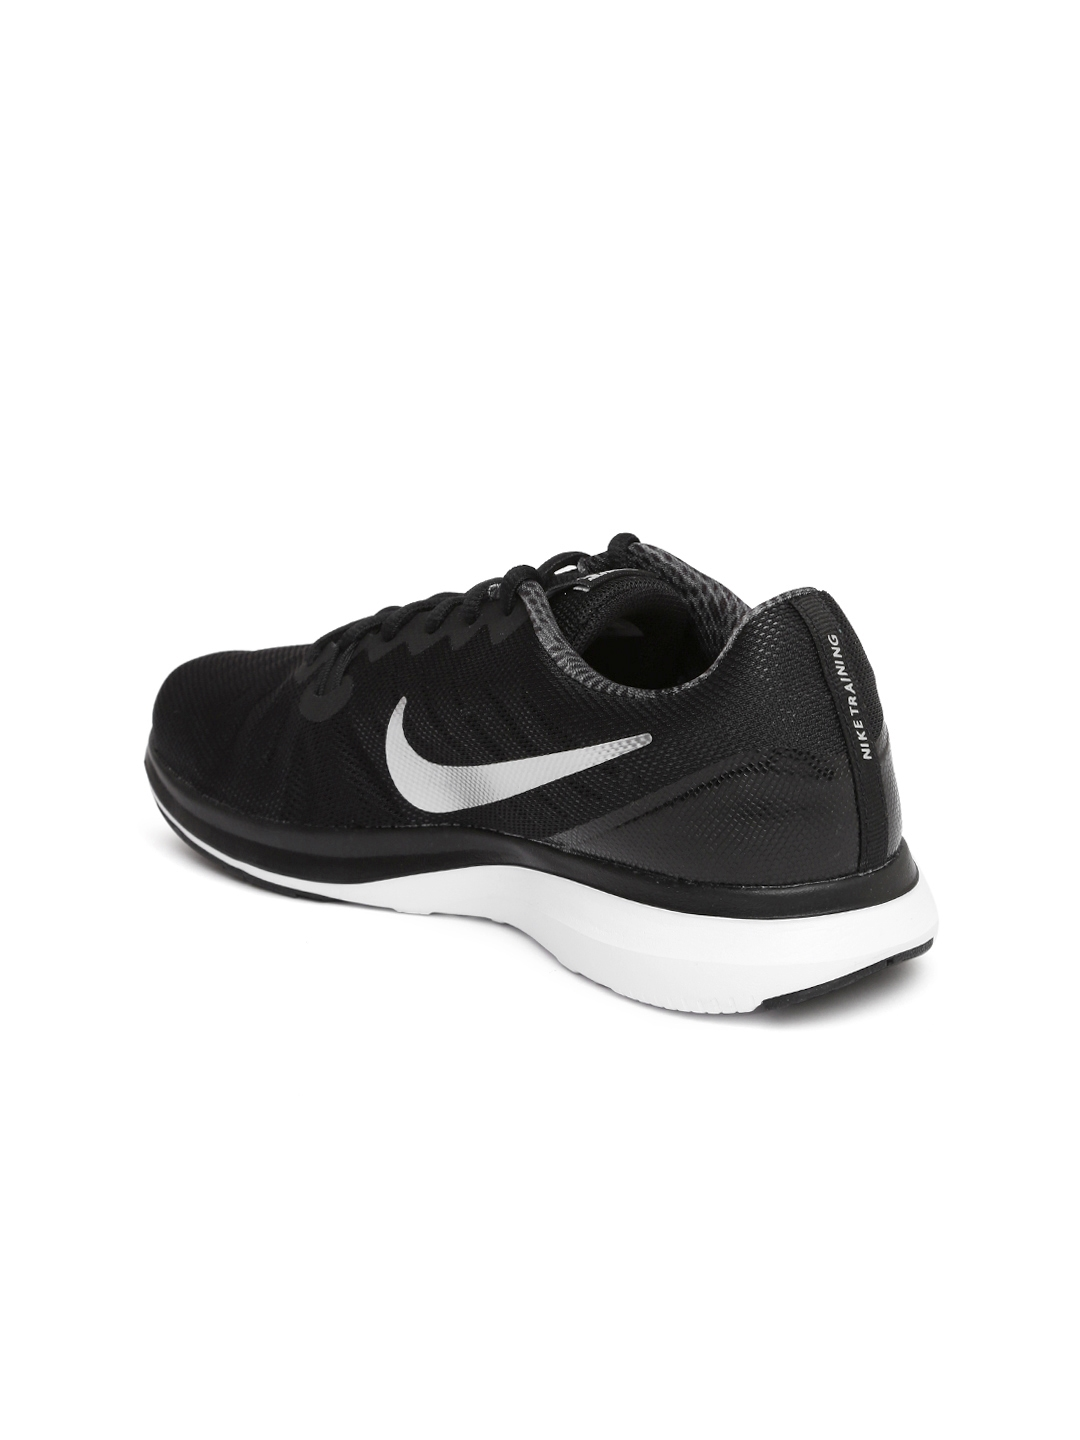 677e32d3d2833 Buy Nike Women Black IN SEASON TR 7 Training Shoes - Sports Shoes ...